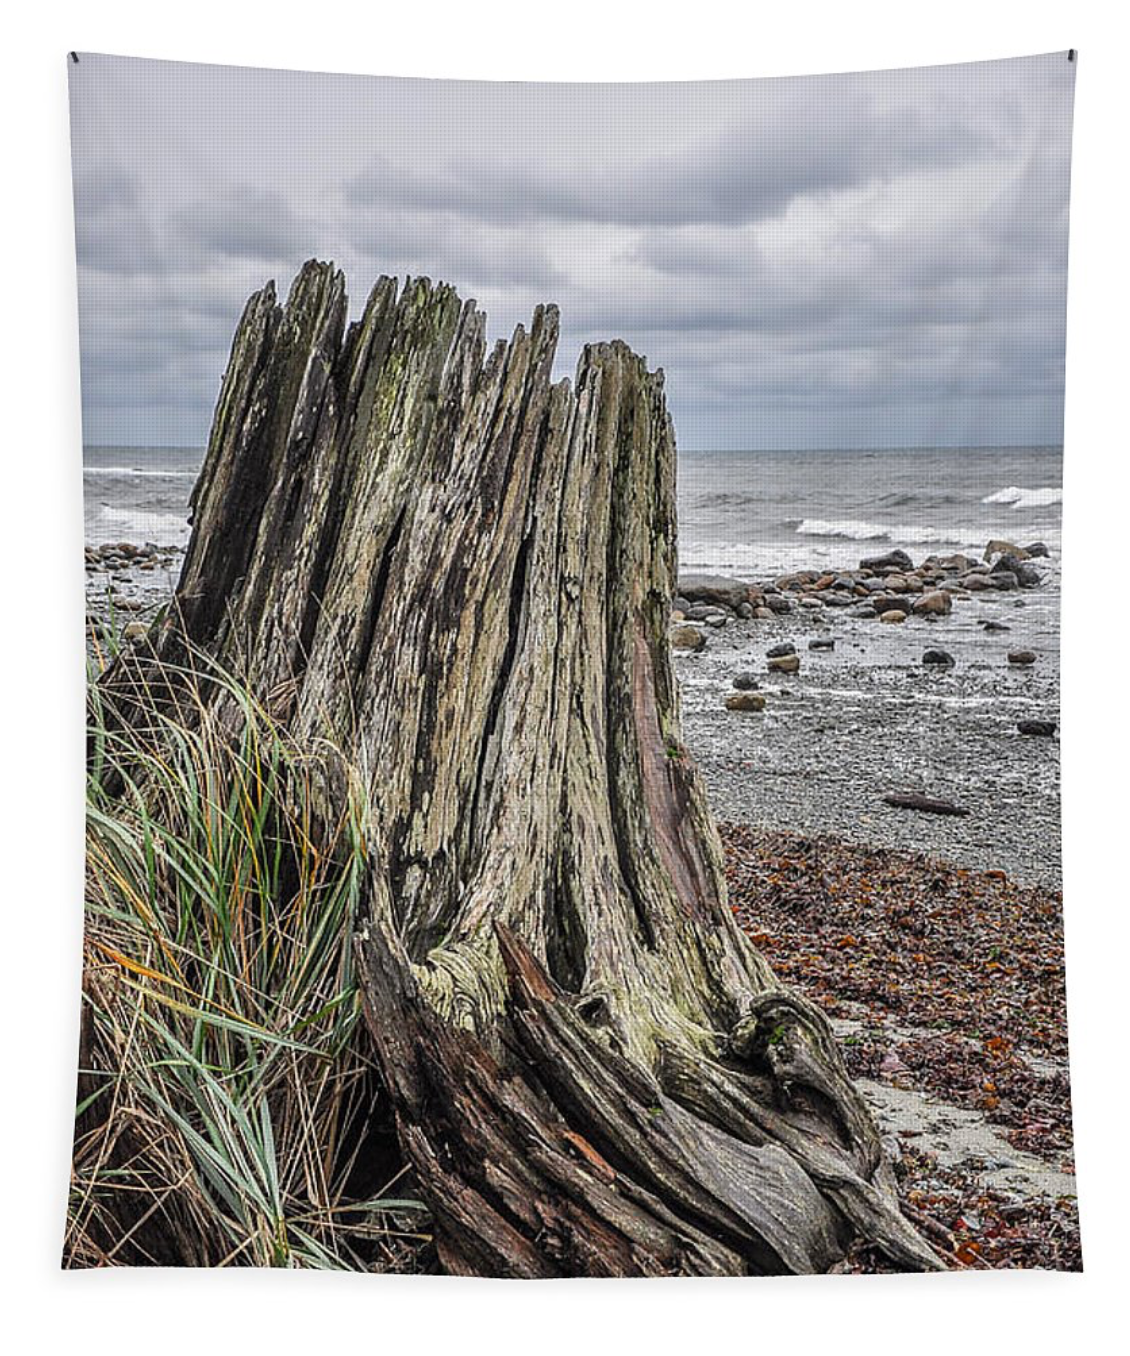 Gray Day Qualicum Beach Wall Tapestry